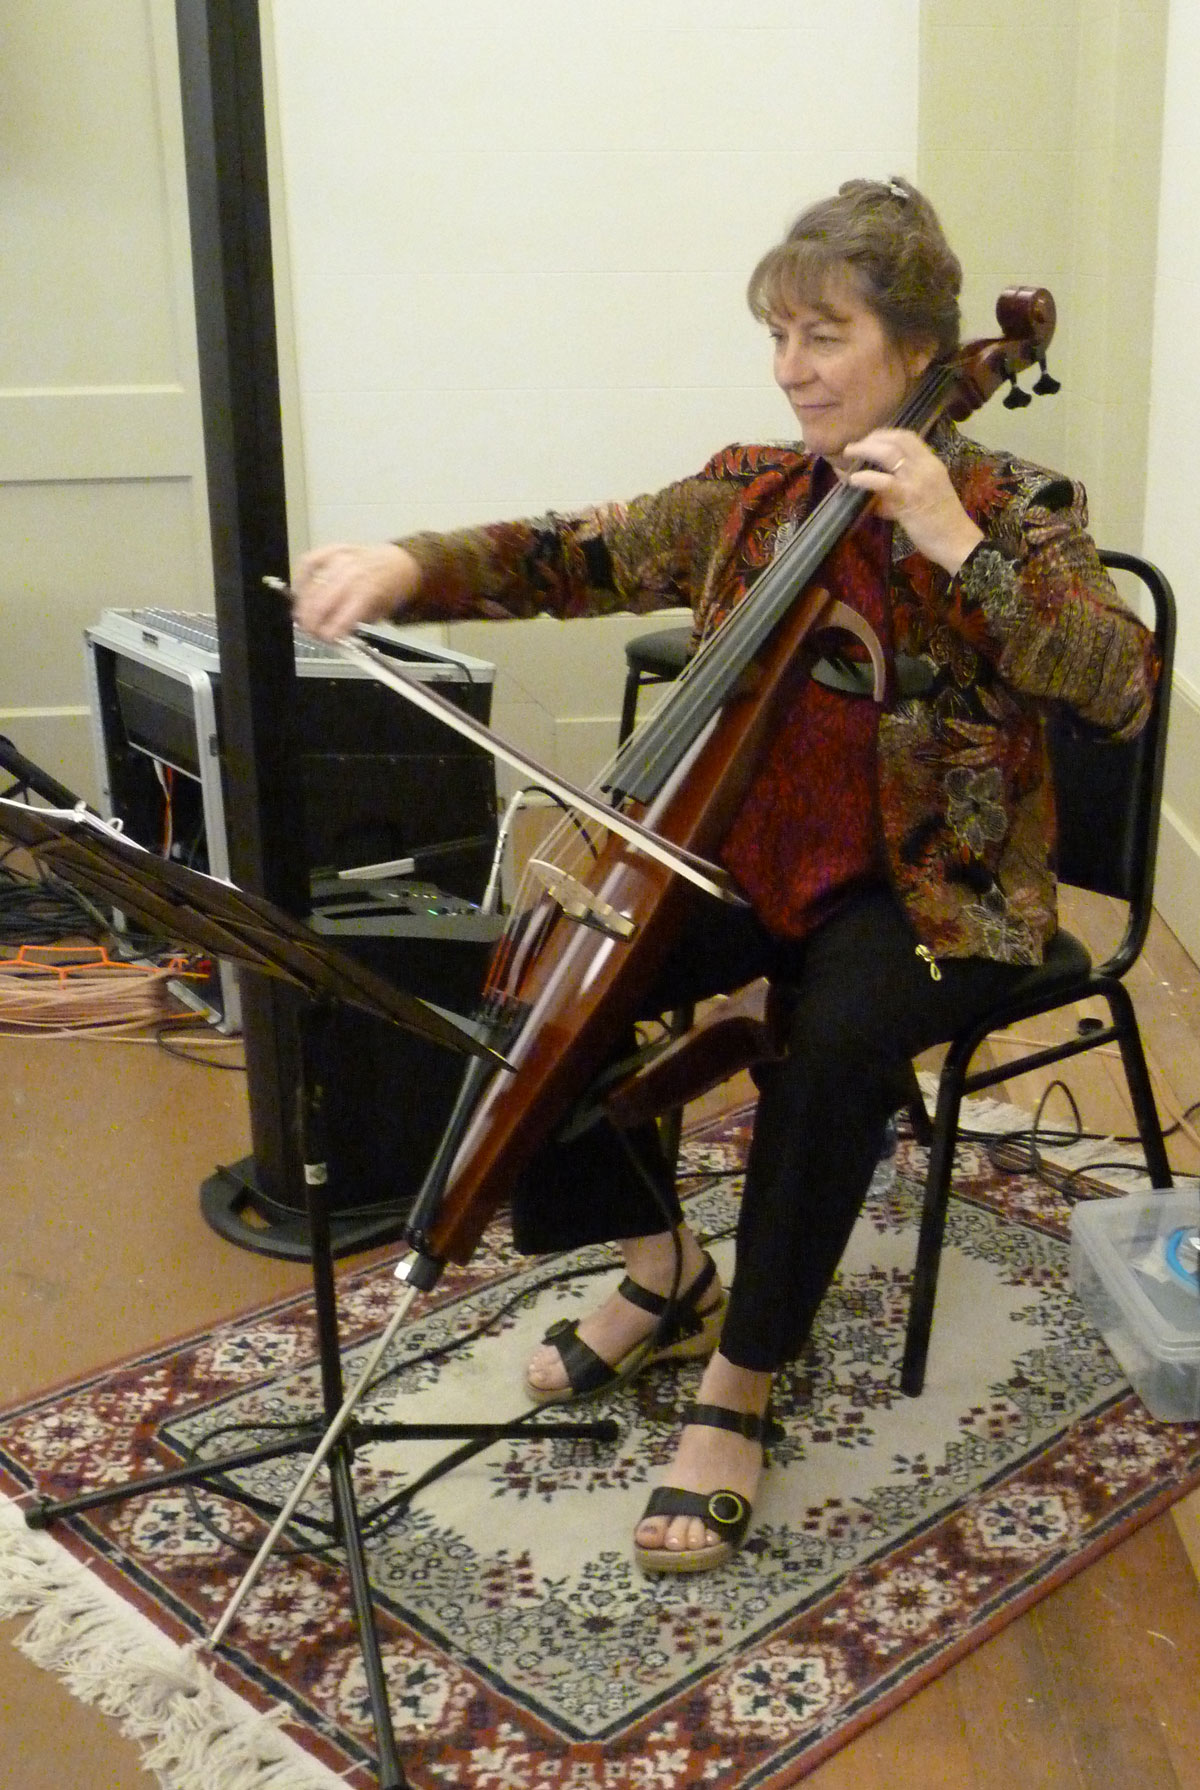 Marlene playing the electric cello